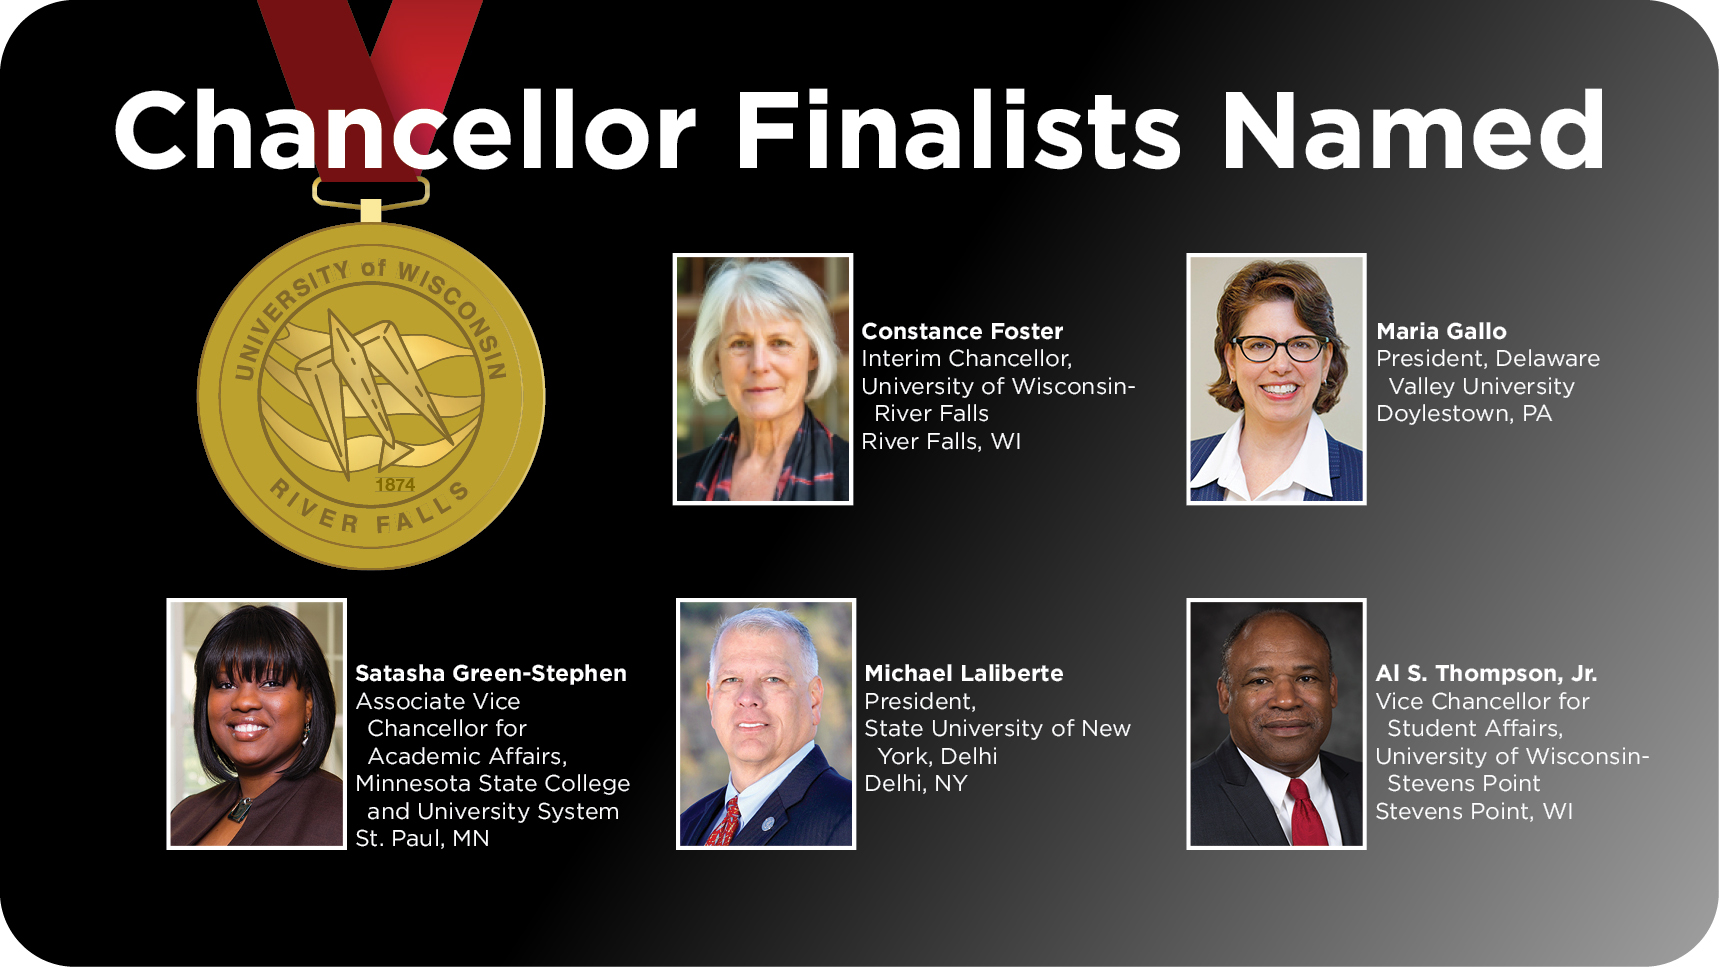 Chancellor Finalists